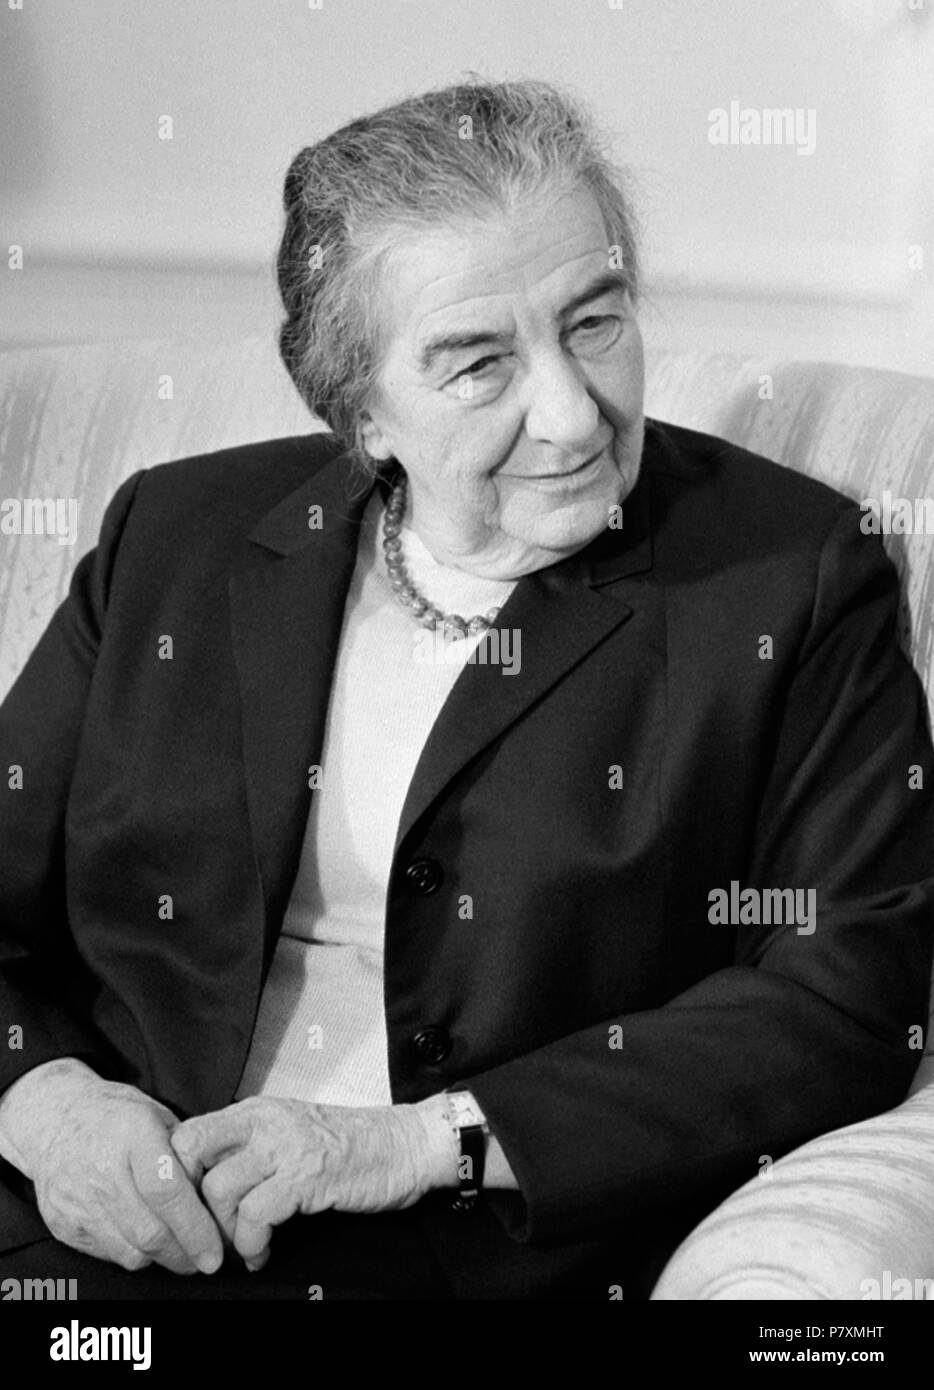 Israeli Prime Minister Golda Meir meeting in the Oval Office of the White House with President Richard M. Nixon on March 1, 1973. - Stock Image